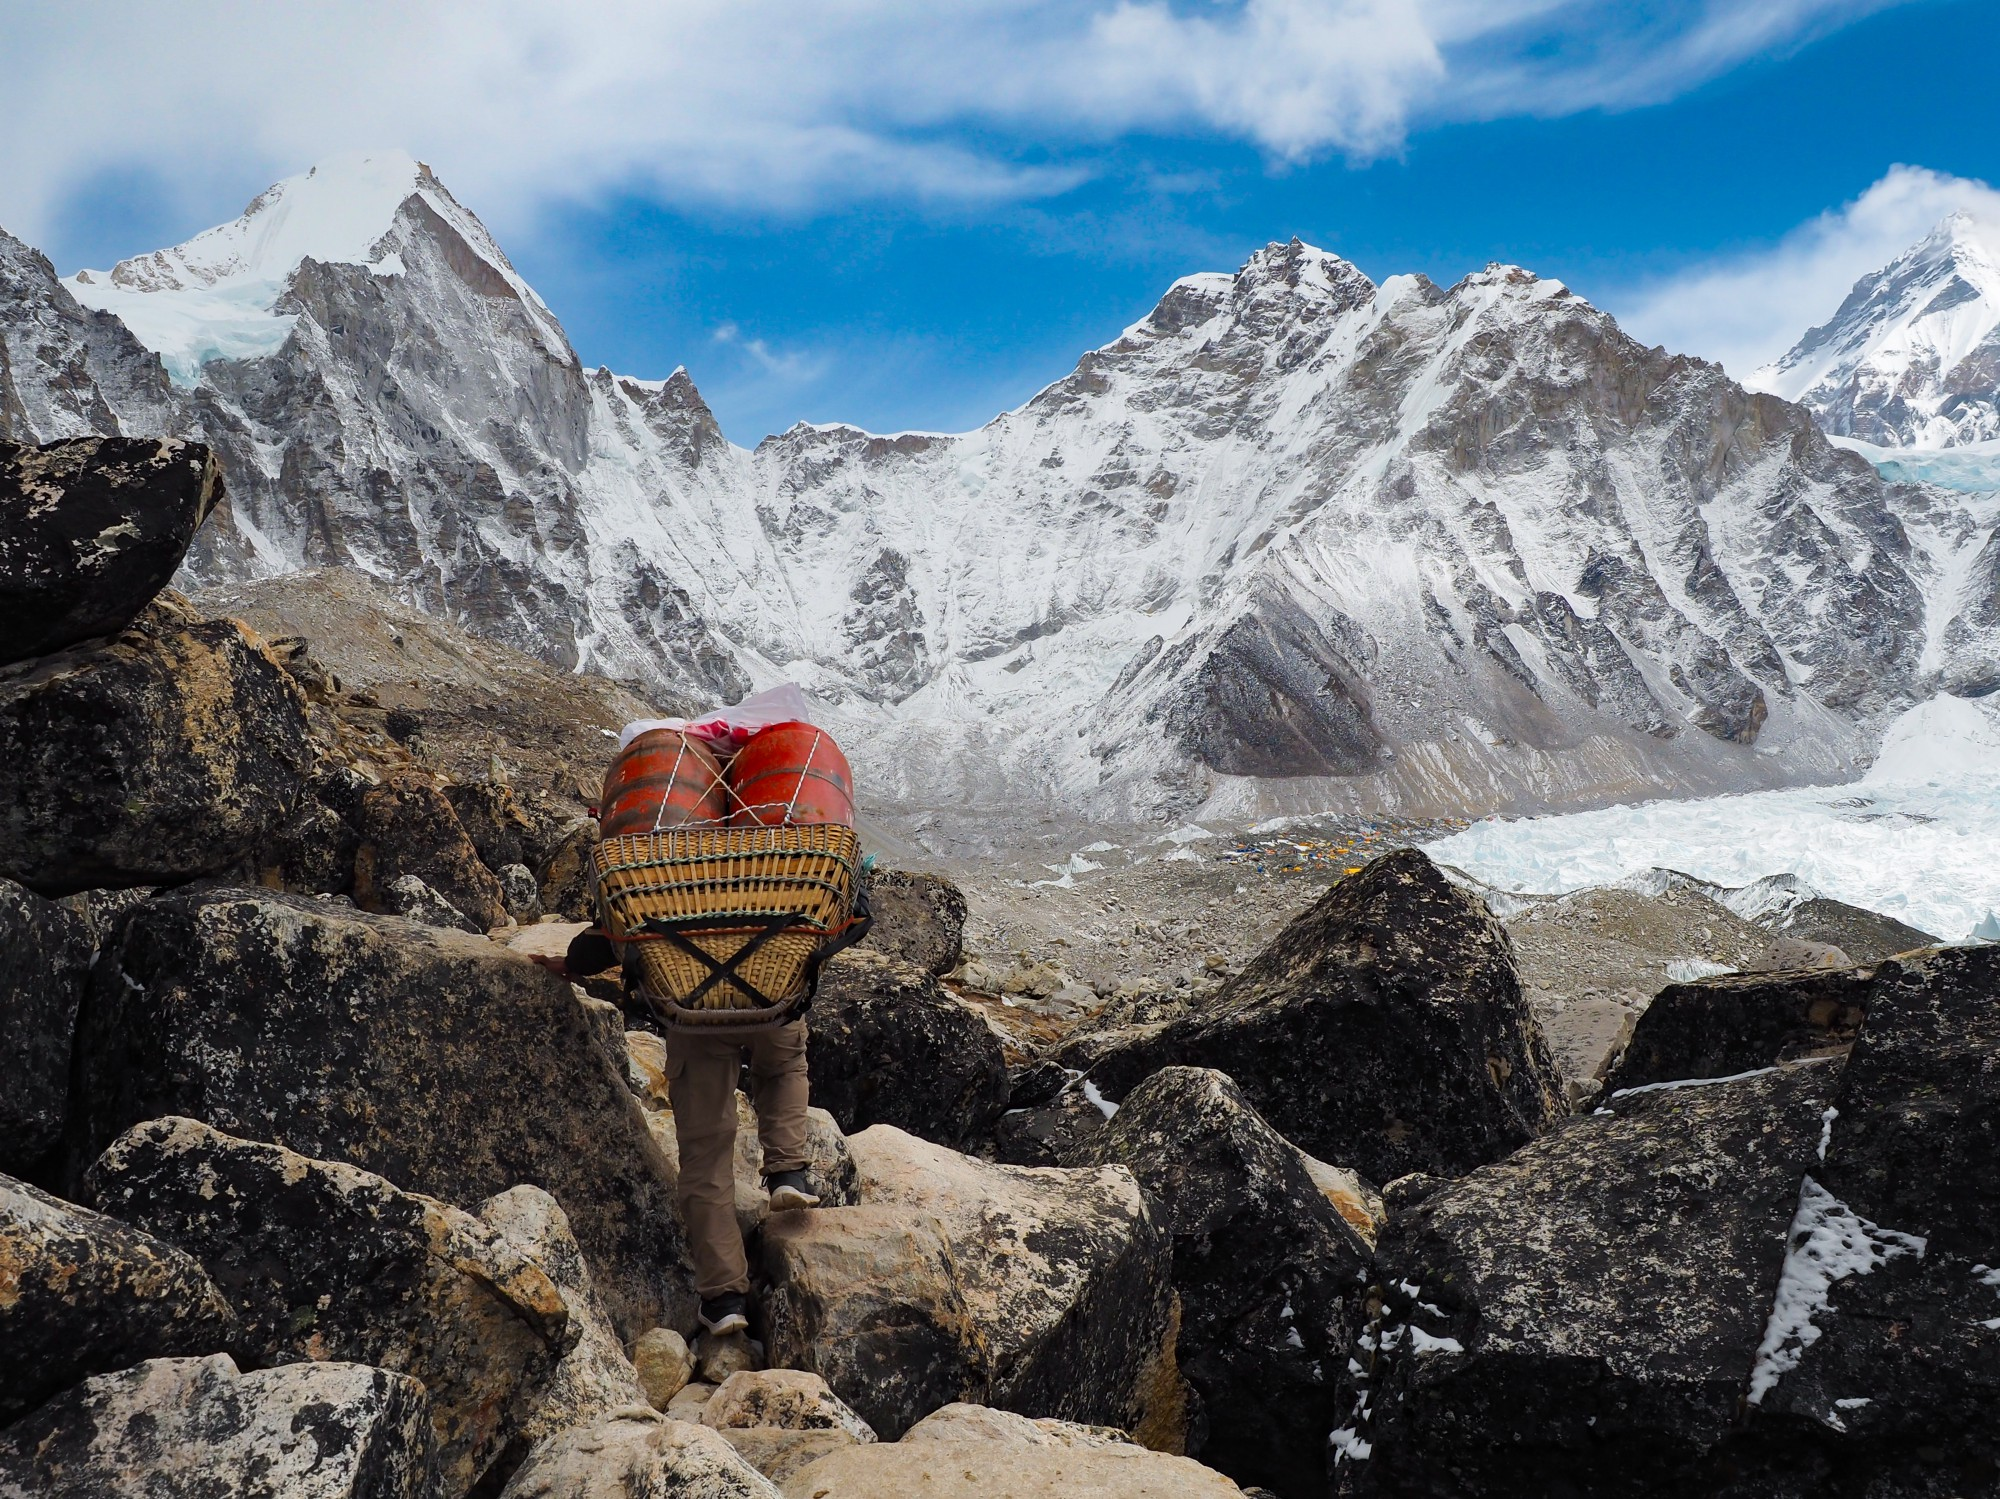 A sherpa hauls supplies on the south side of the Everest Base Camp trek, at an altitude of 17,900 feet (5,500 m).